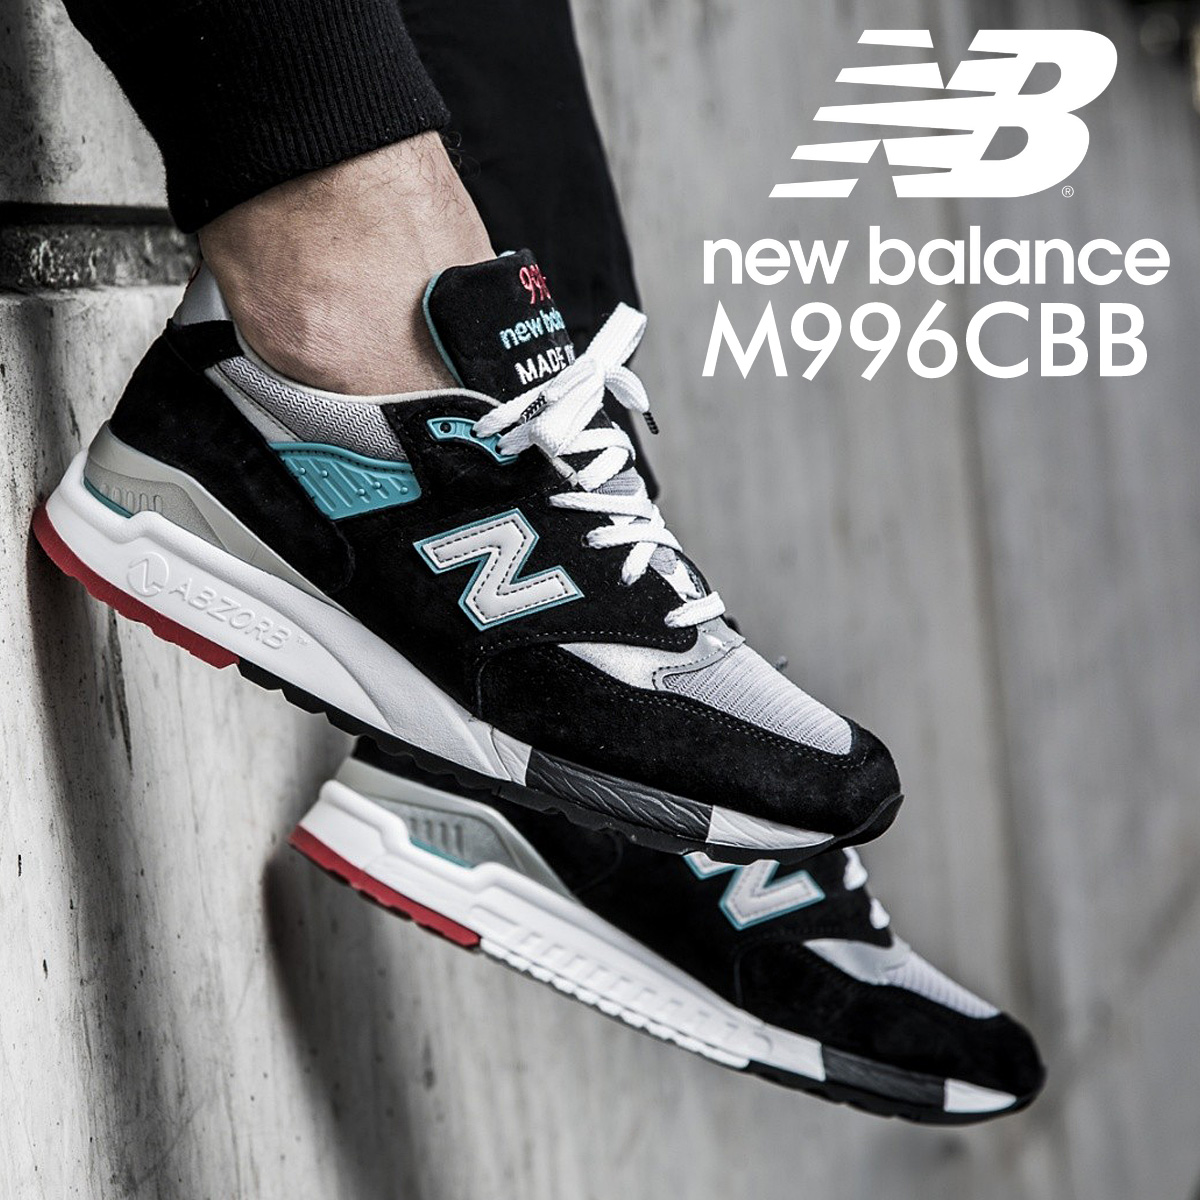 the latest 2f4e7 109c3 new balance 998 men's New Balance sneakers M998CBB D Wise MADE IN USA shoes  black [9/14 Shinnyu load] [179]